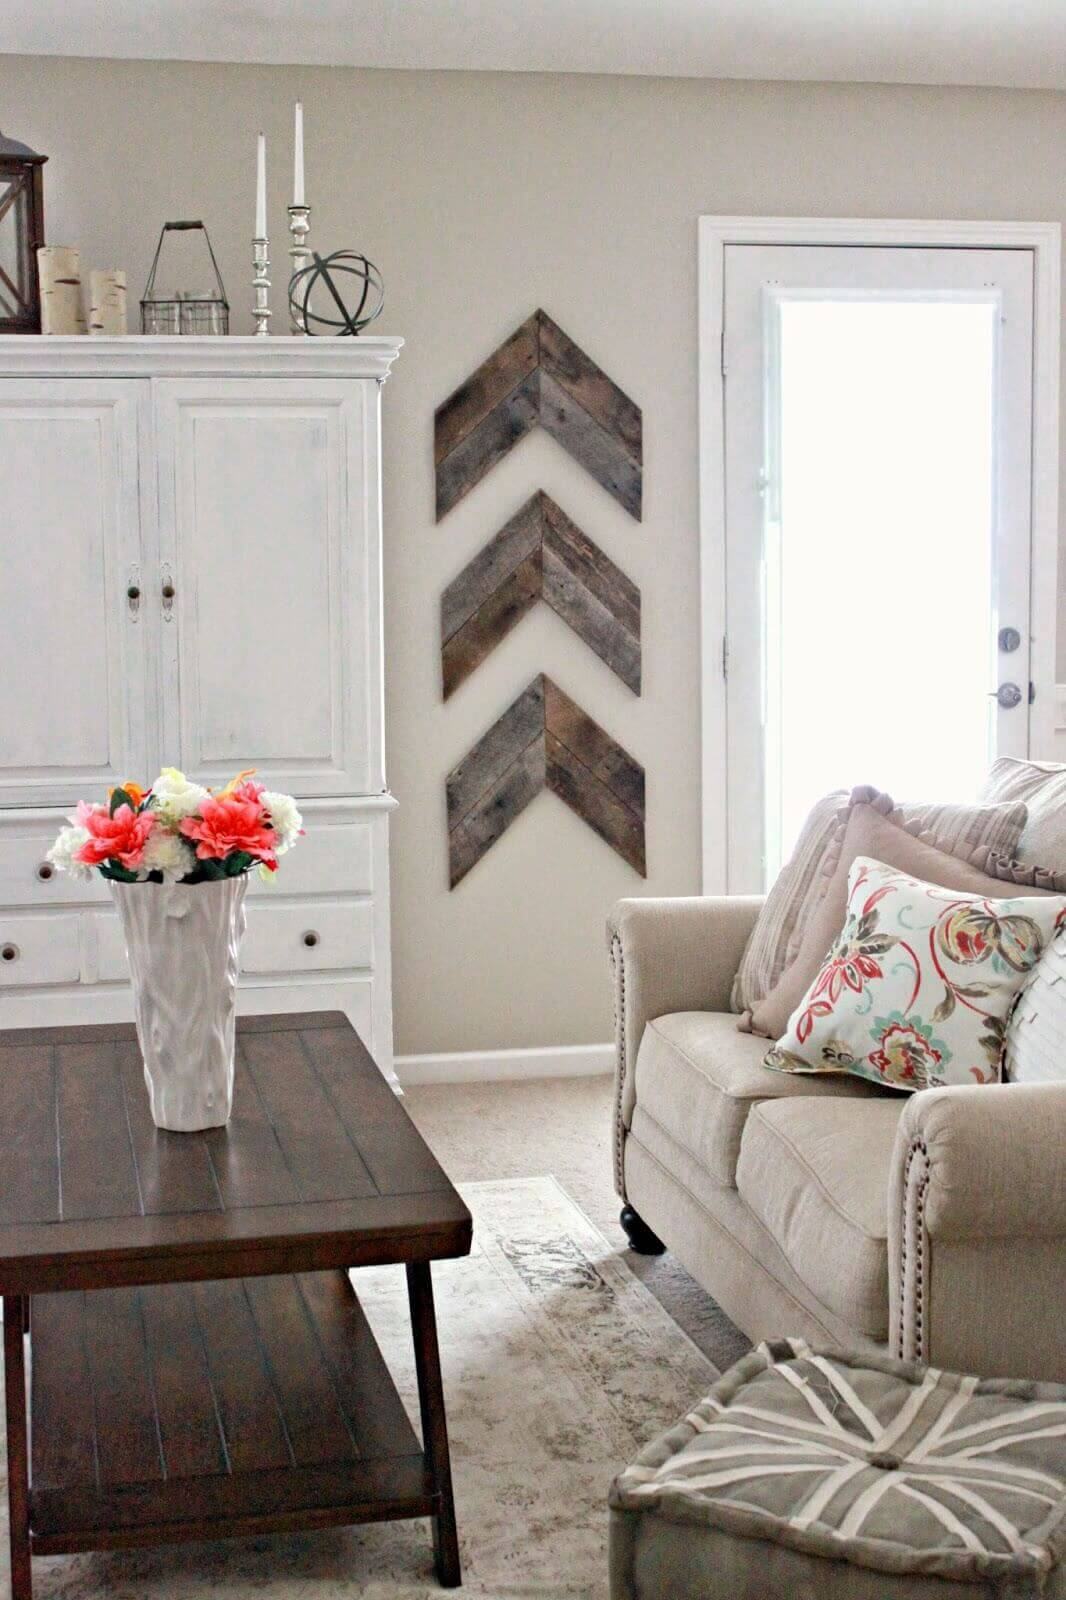 Cool Country Barn Wood Chevron Design